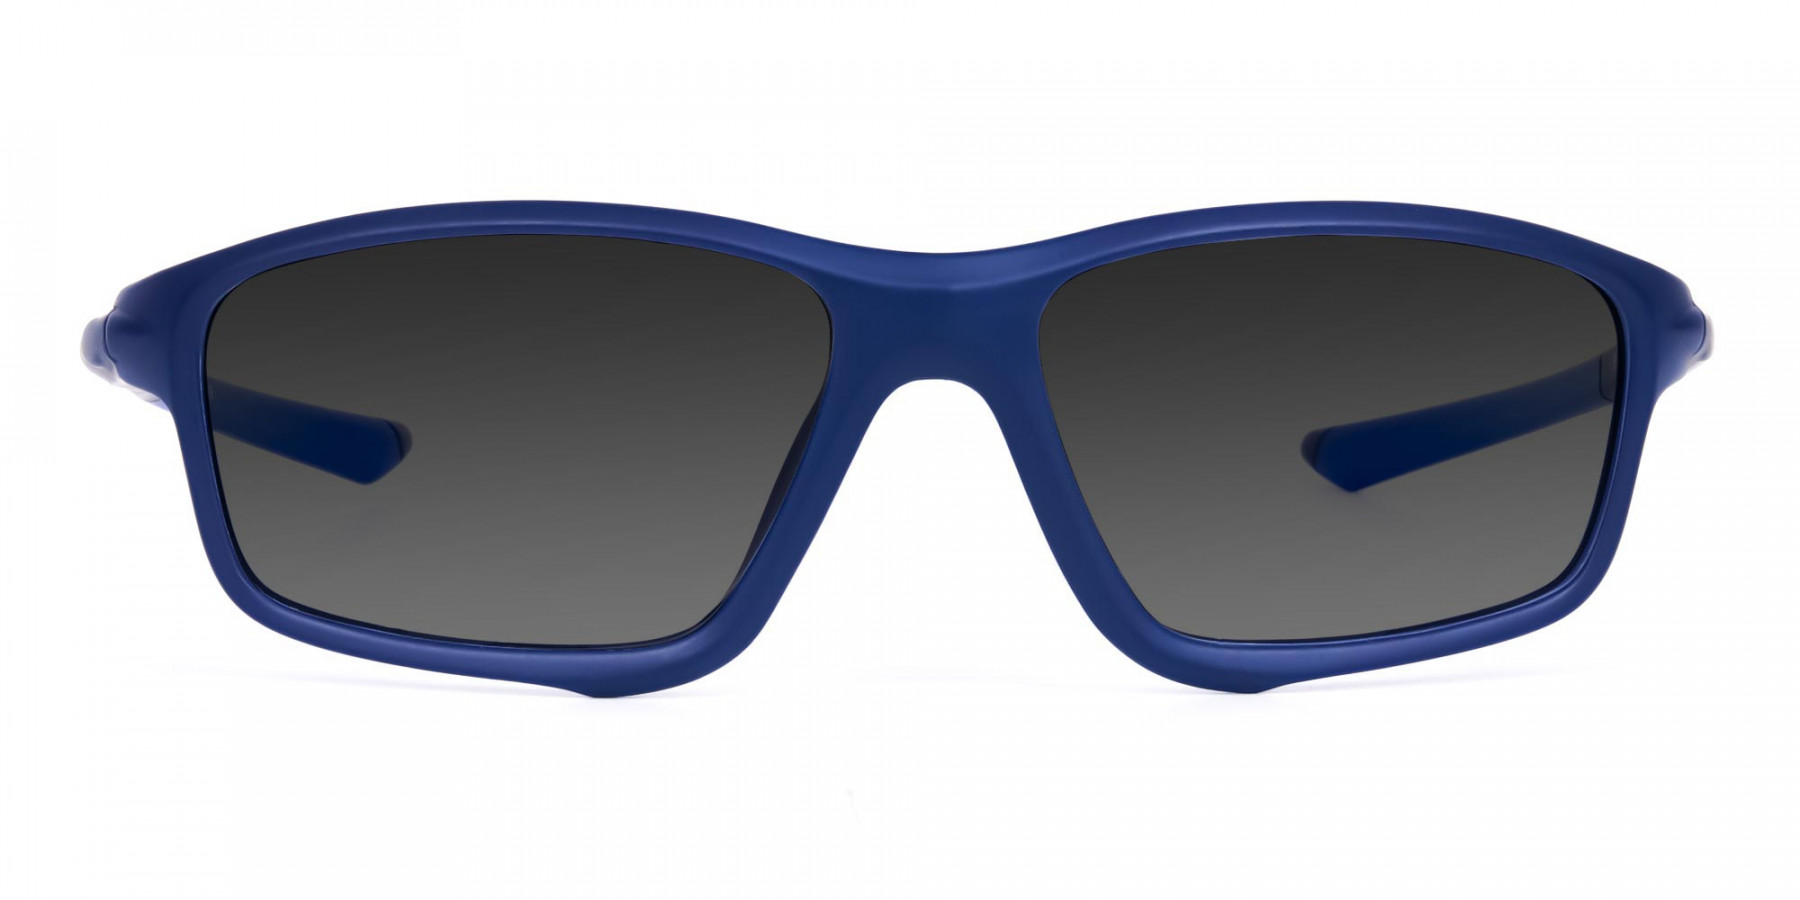 Golf Sunglasses With Grey Tints-3